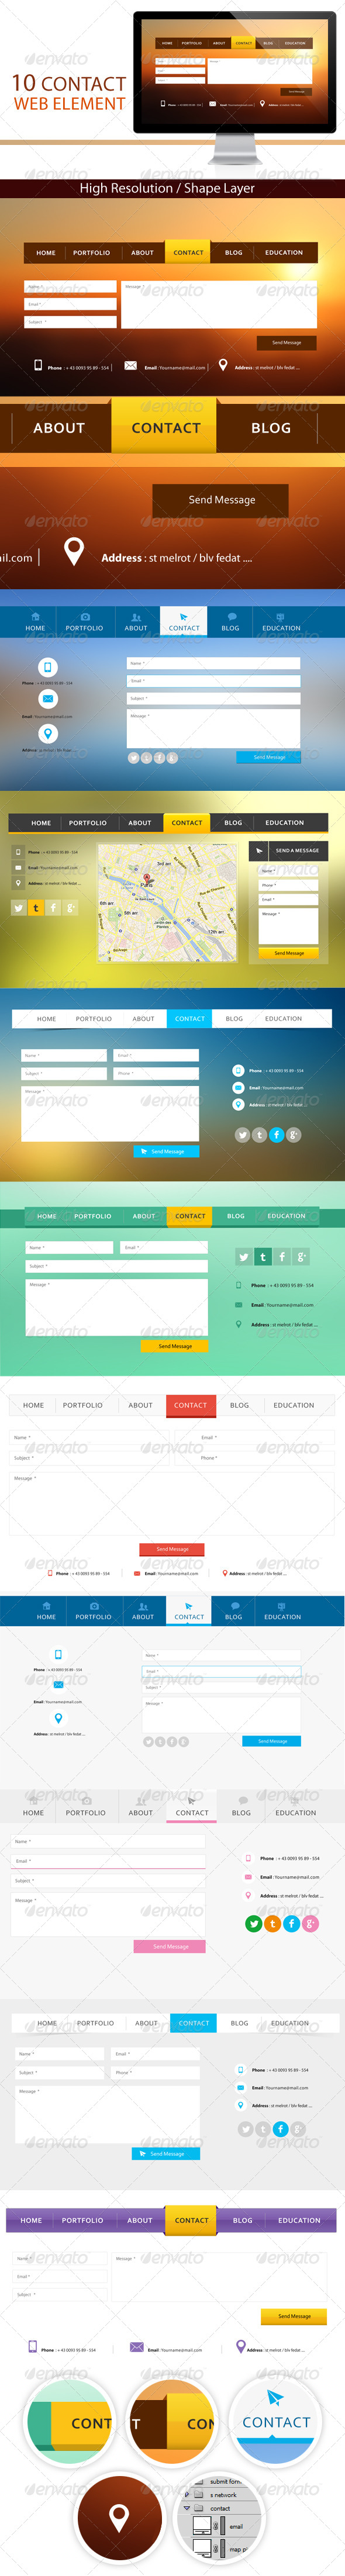 GraphicRiver 10 Contact Web Element 5018141